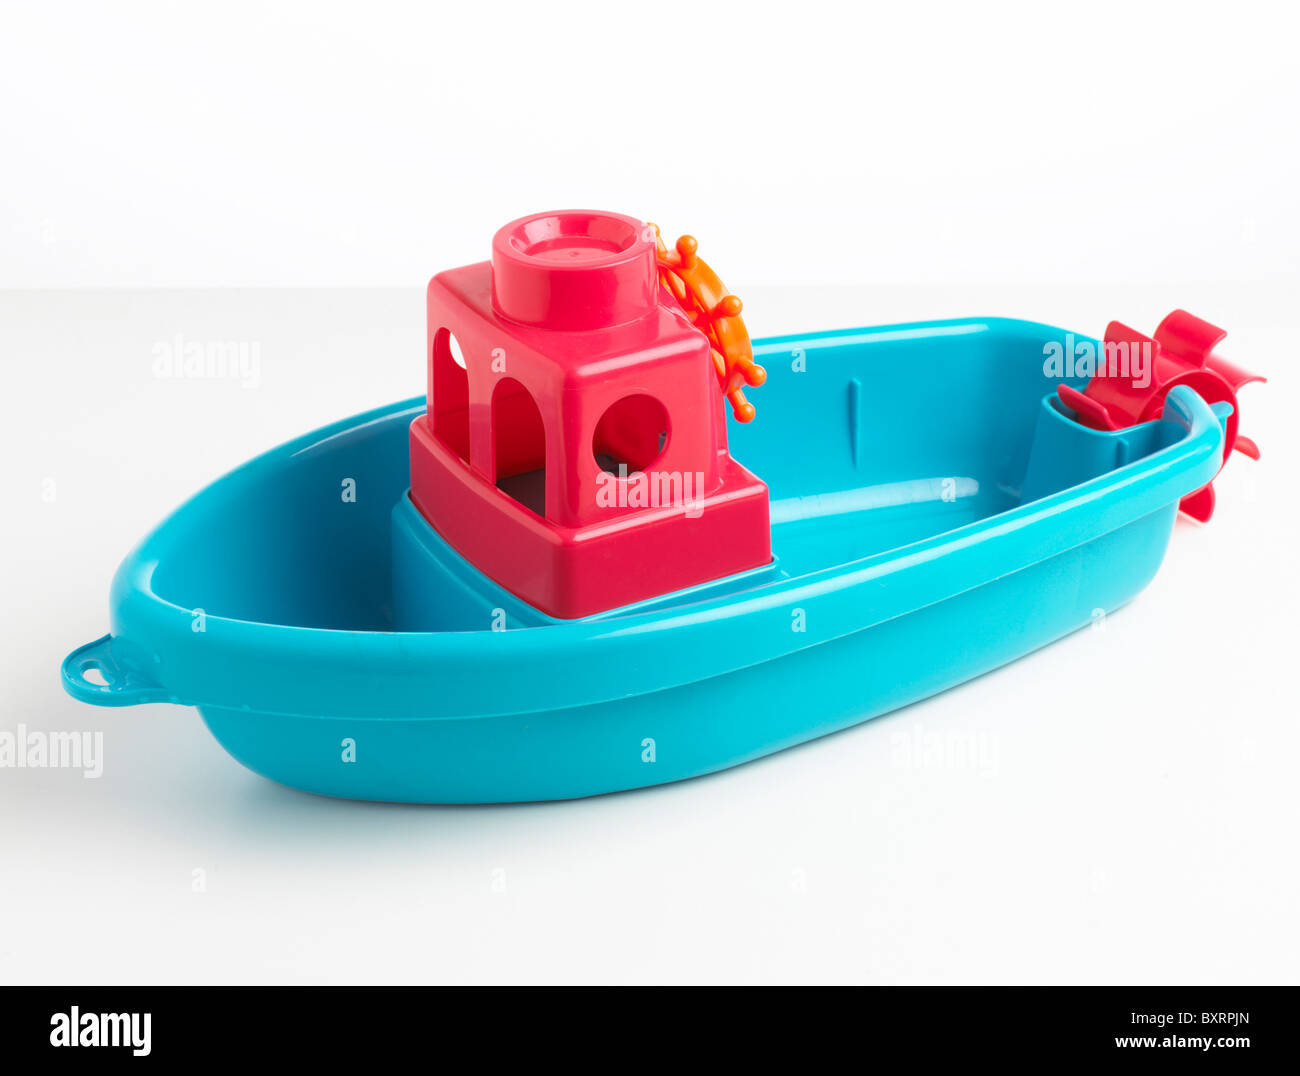 Plastic blue toy boat - Stock Image